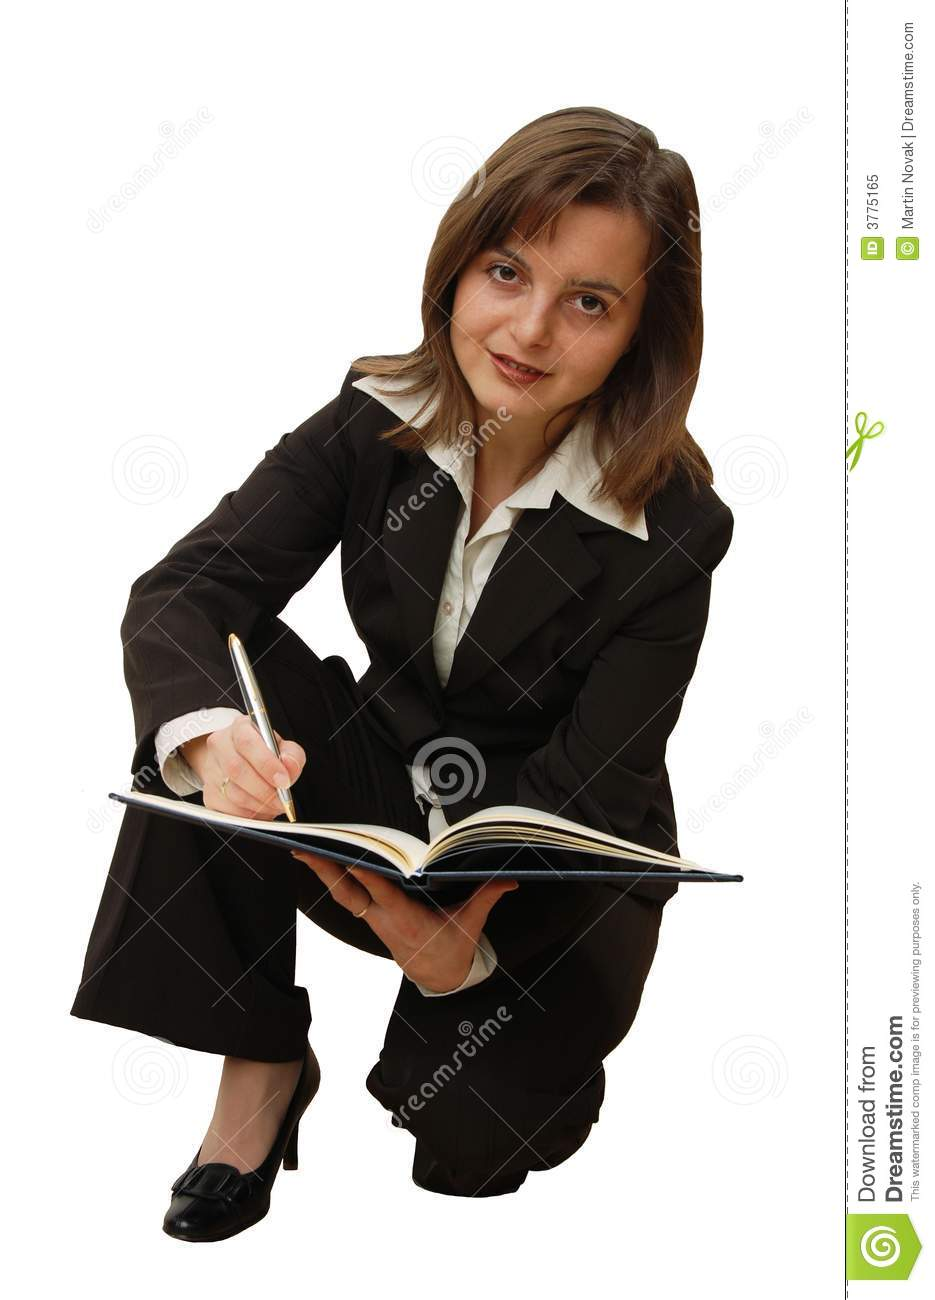 Business woman in action stock image. Image of diary